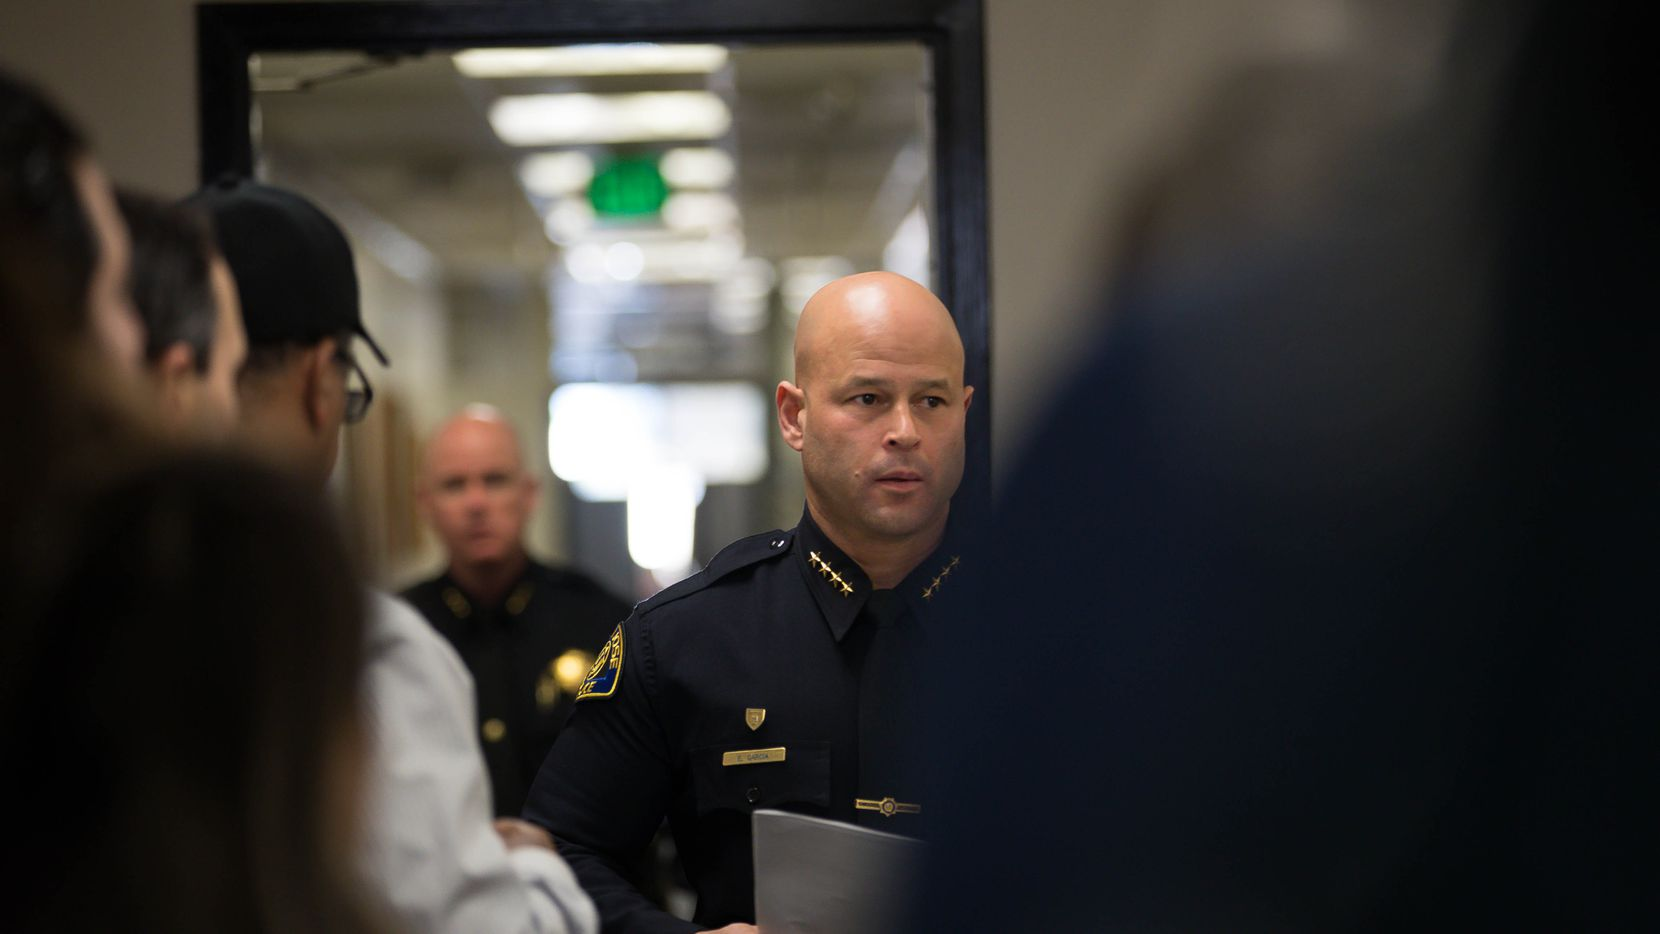 San Jose Police Chief Eddie Garcia, center, walks into a press conference at the San Jose Police Department in San Jose, Calif., on Tuesday, March 12, 2019. (Randy Vazquez/MediaNews Group/The Mercury News via Getty Images)